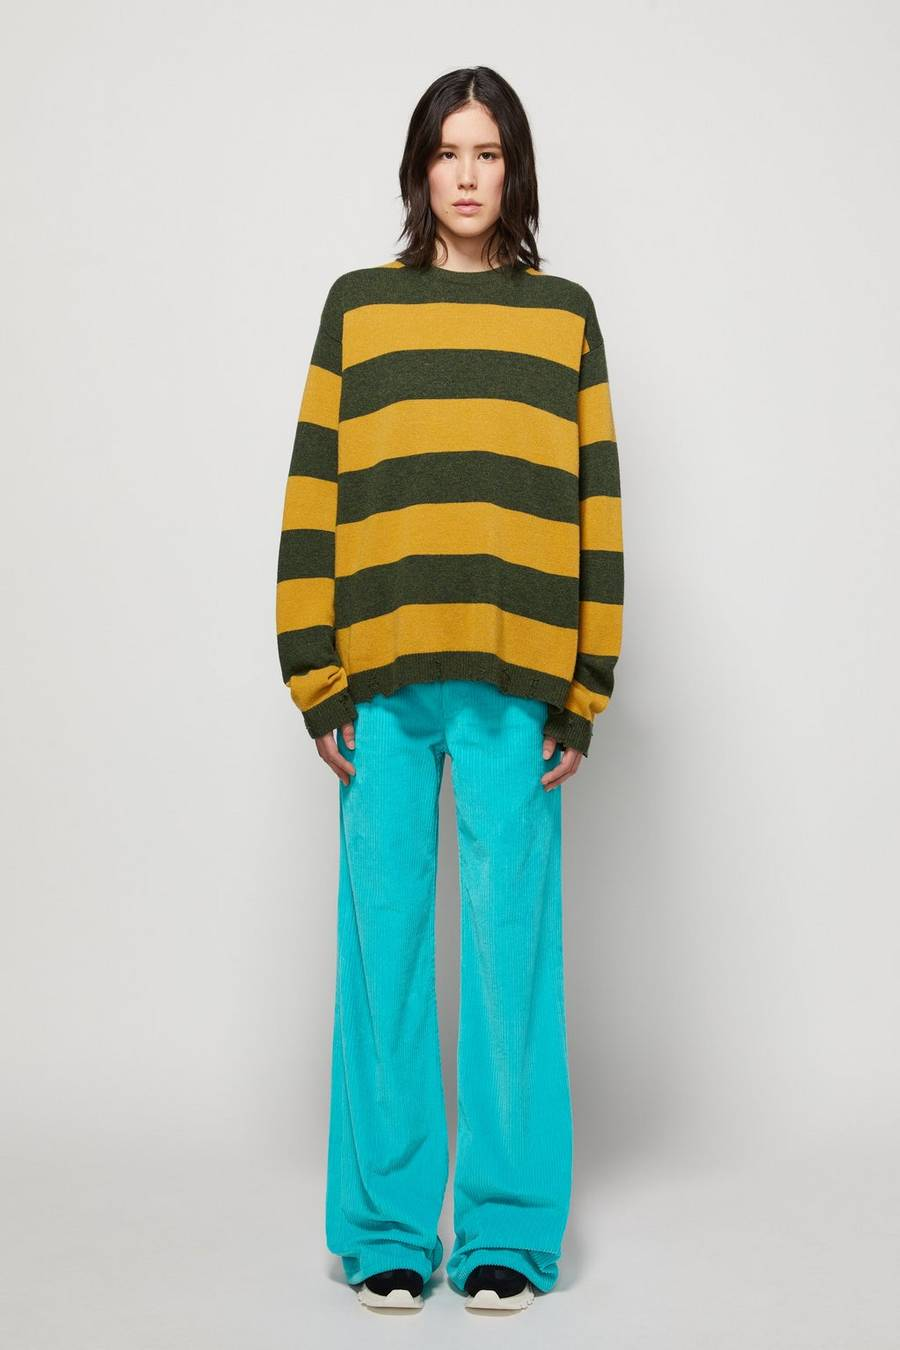 The Grunge Sweater by Marc Jacobs